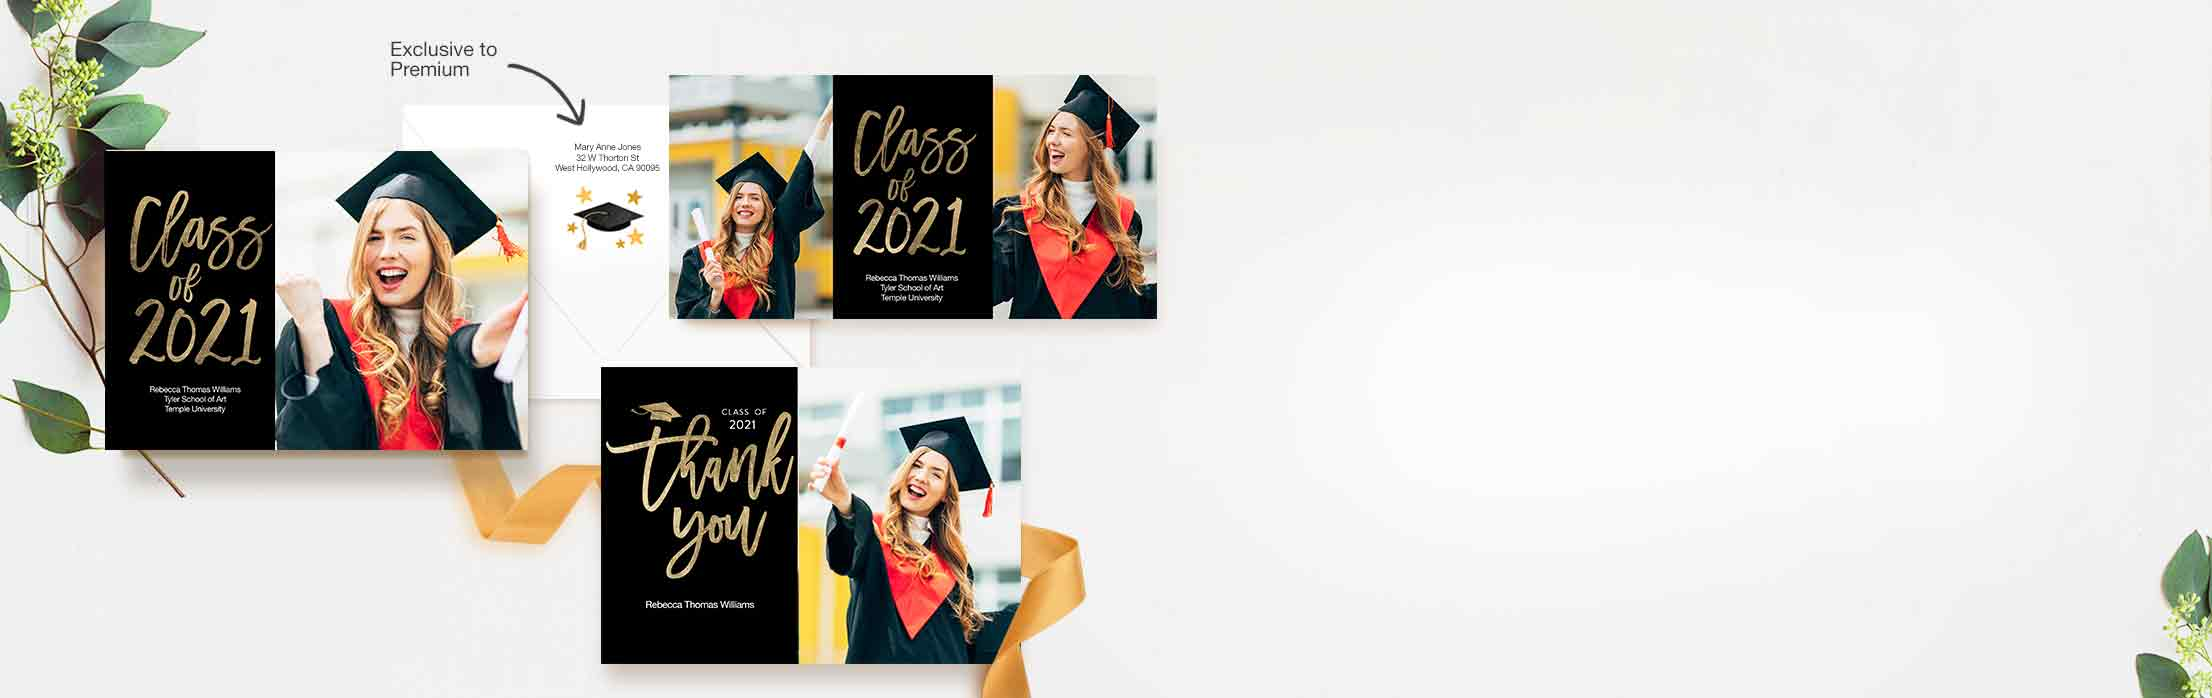 Their future is bright! Send easy-to-make custom cards that celebrate their success.